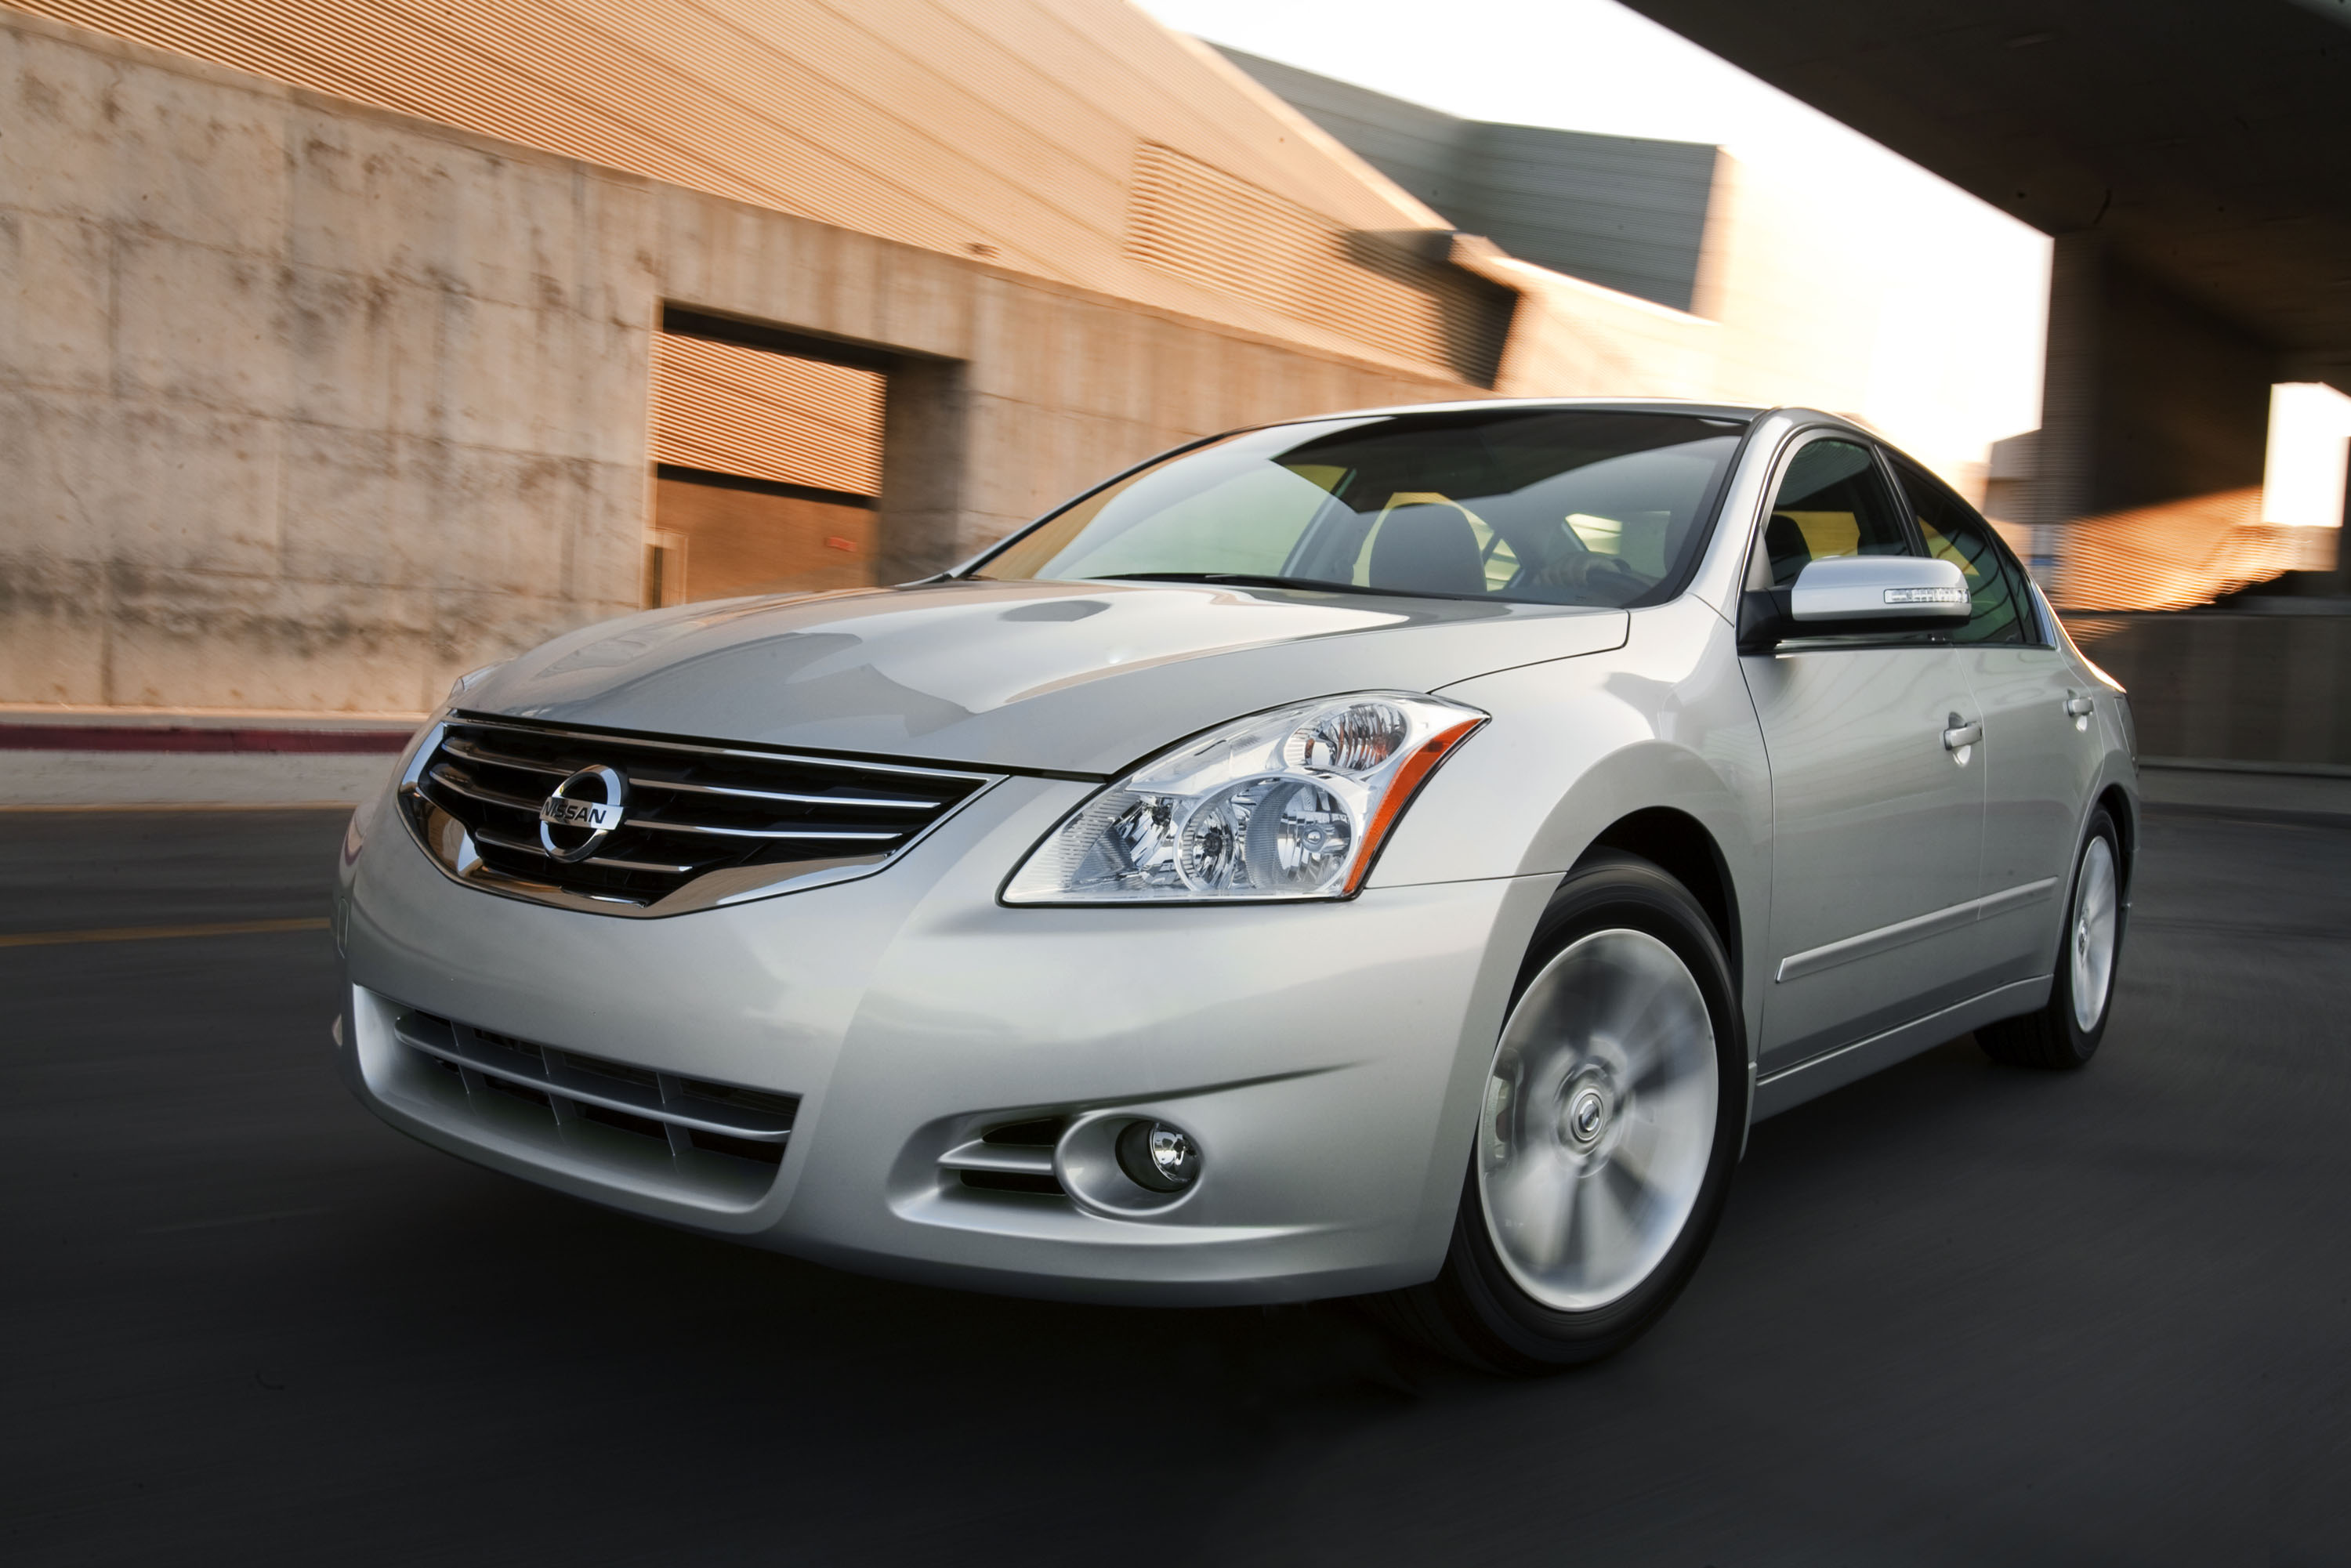 san new alert altima antonio car nissan of world recall